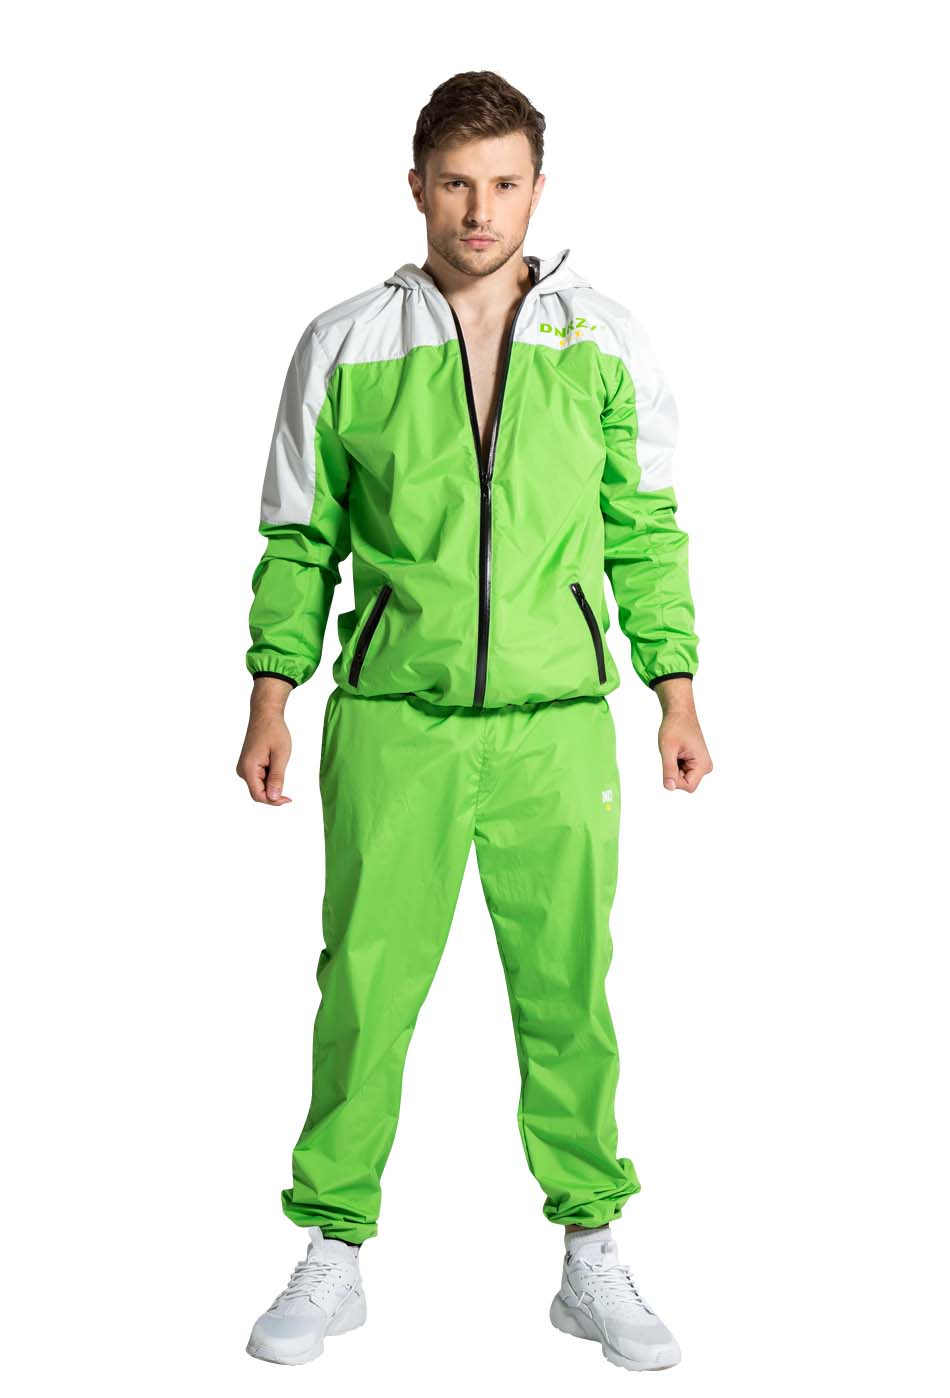 Green Chanel Jogging Suits